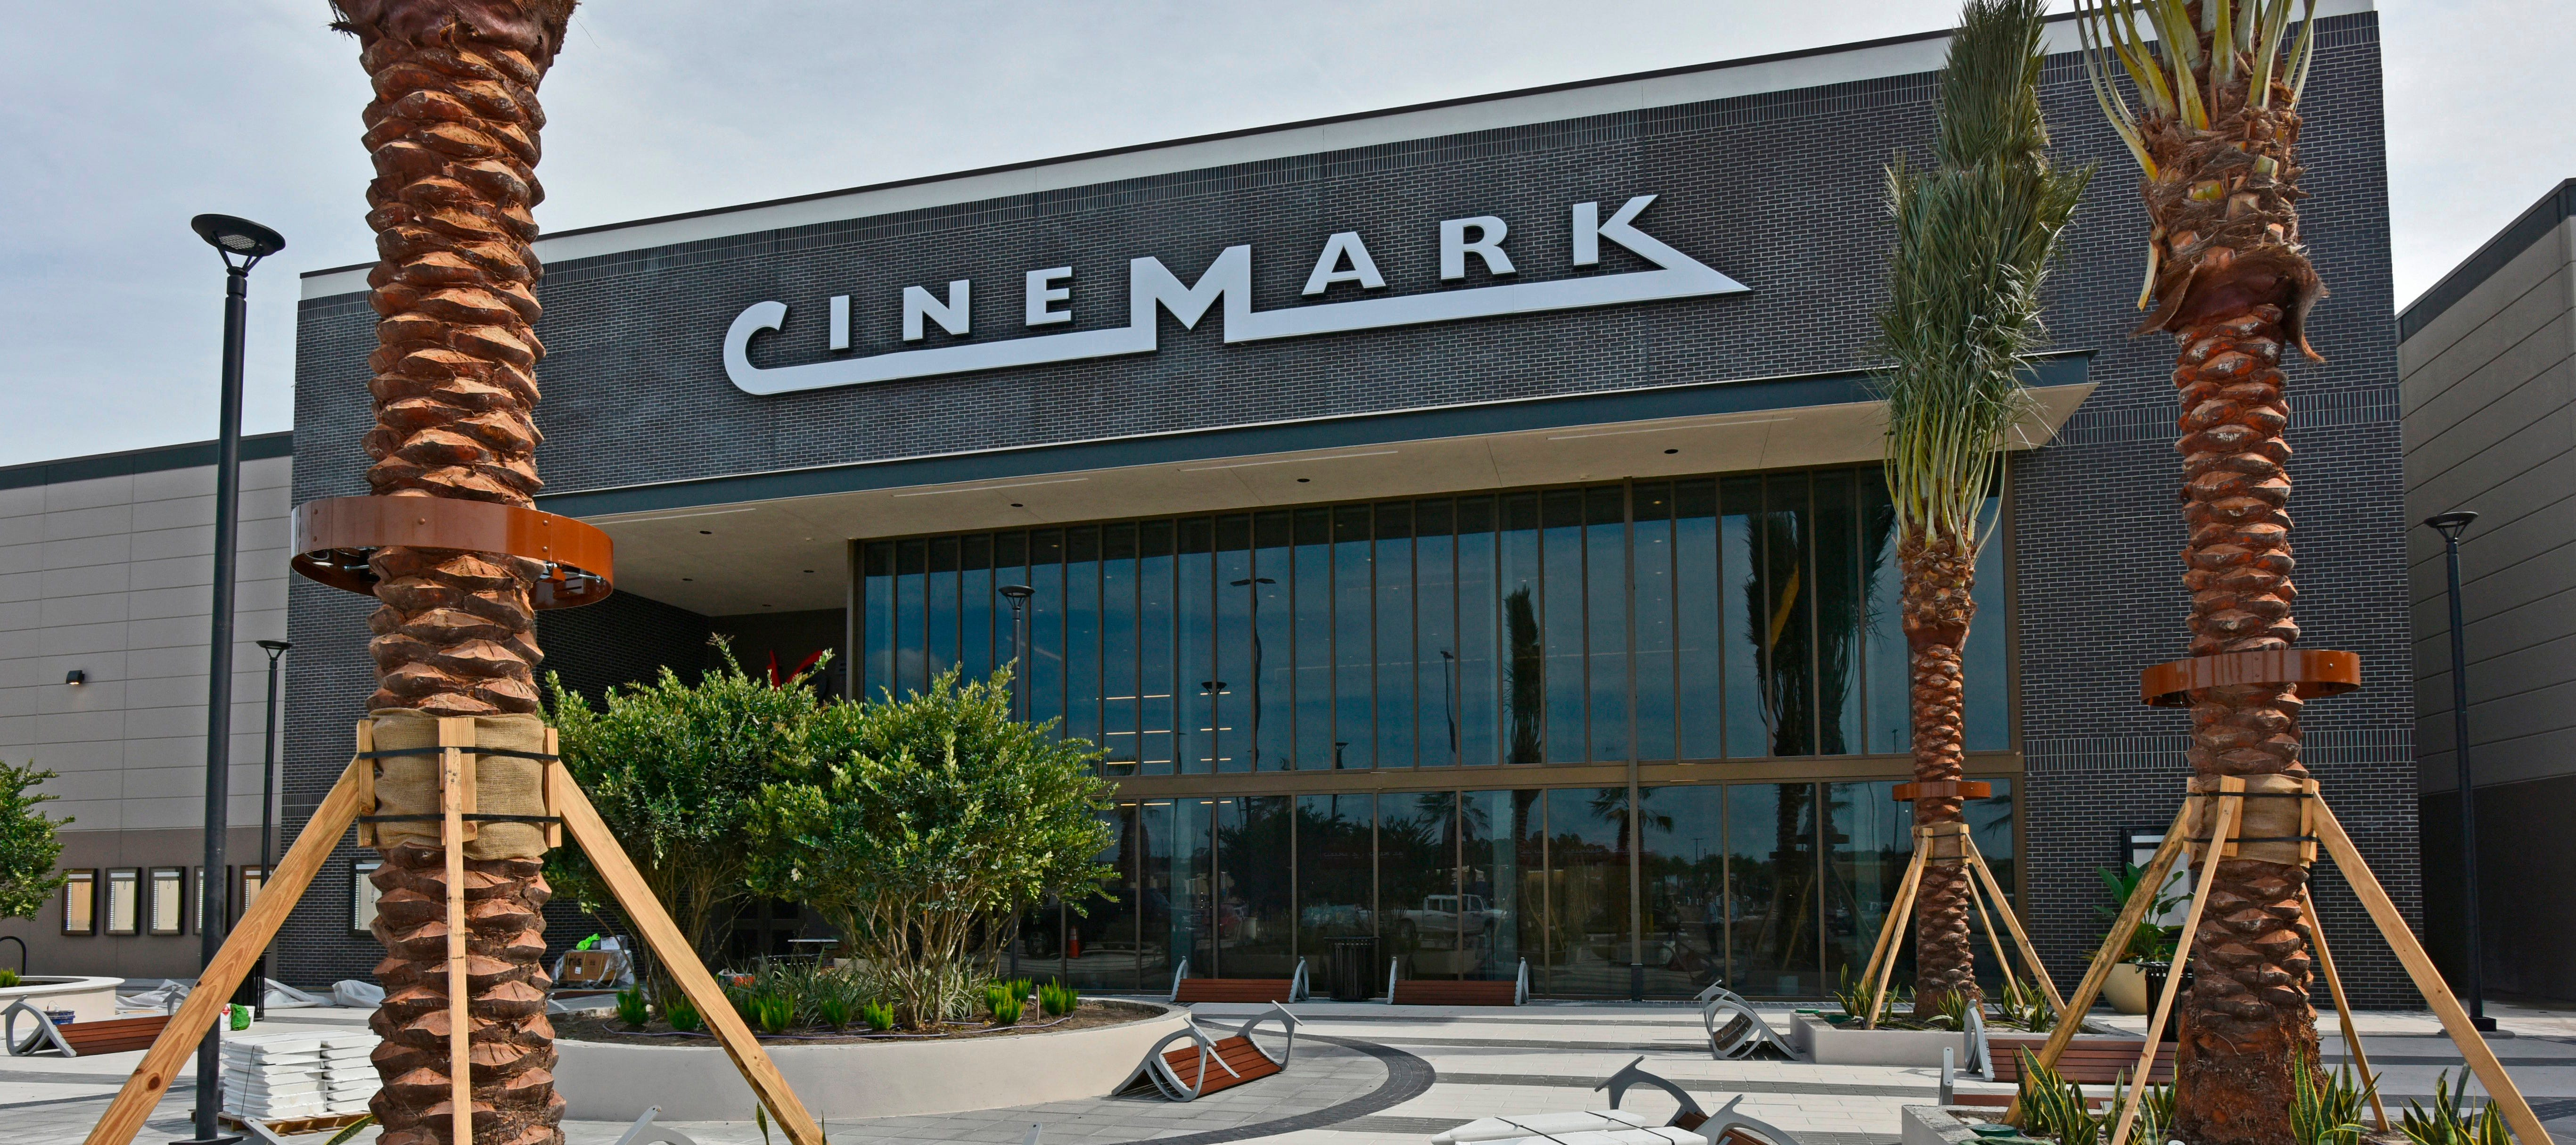 Cinemark Durbin Park movie theater complex reopens Friday in St. Johns